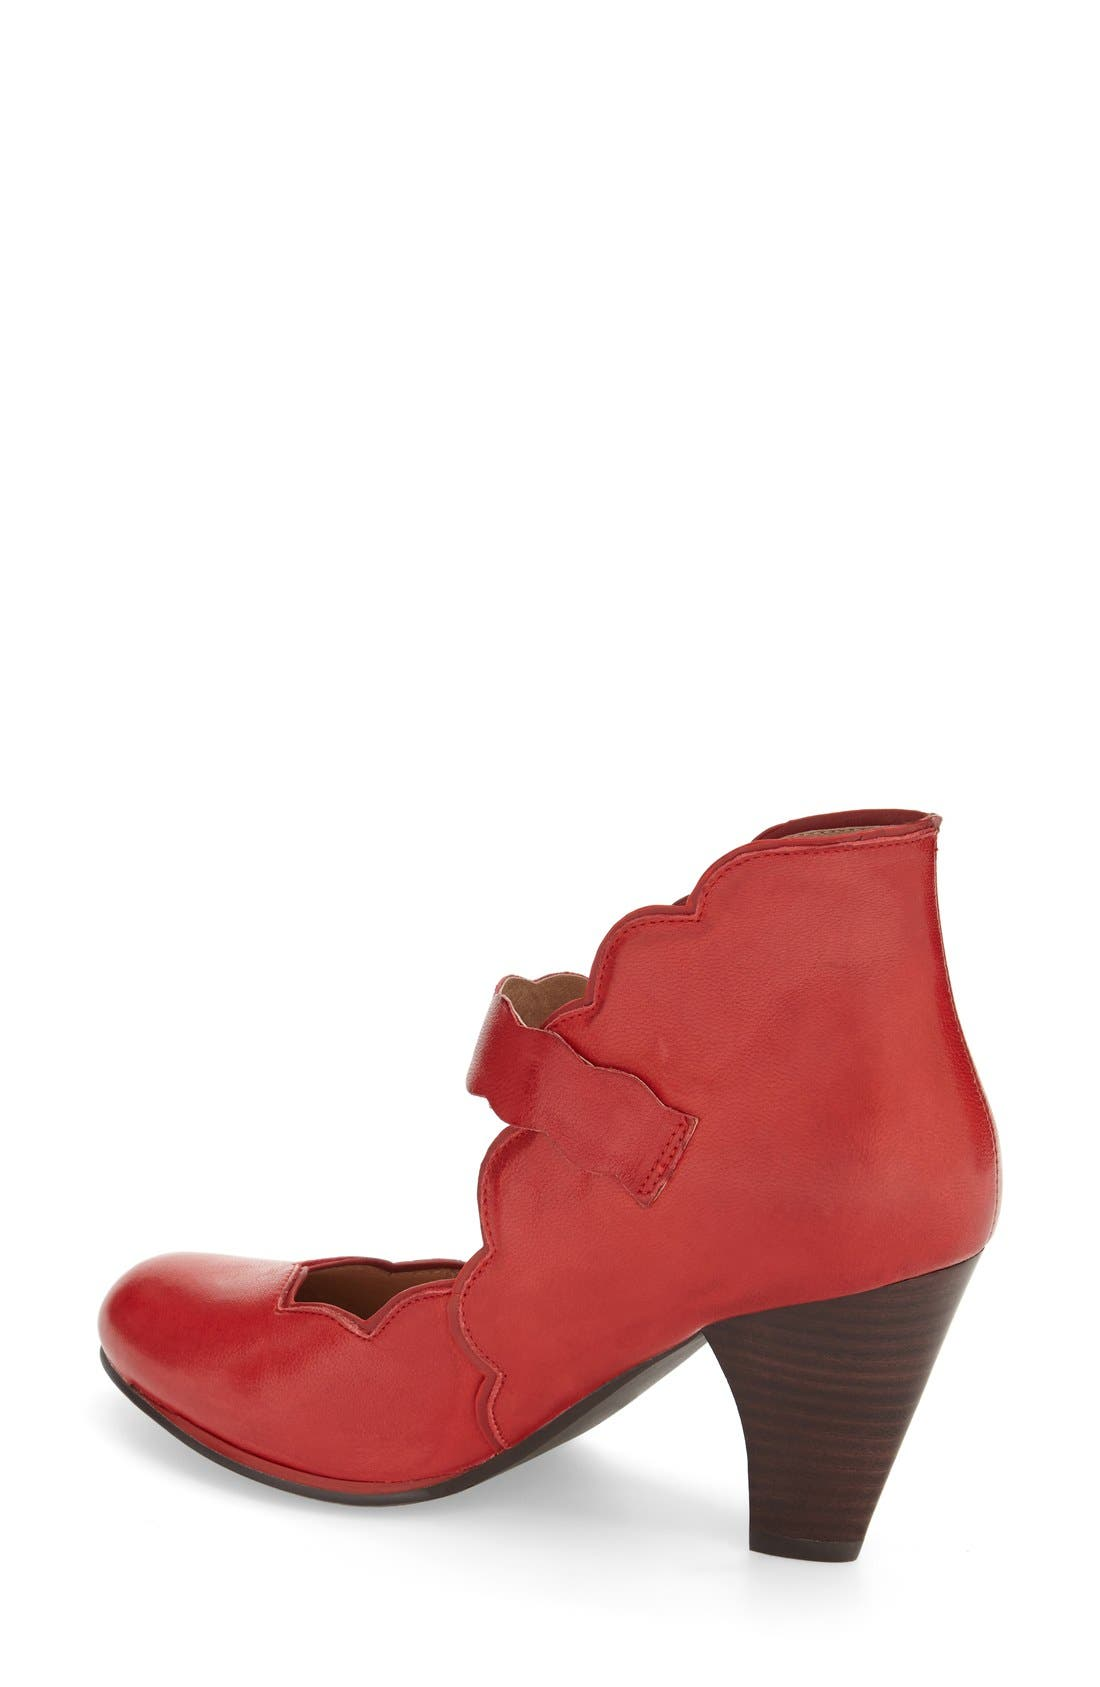 Alternate Image 2  - Miz Mooz Footwear 'Carissa' Mary Jane Pump (Women)